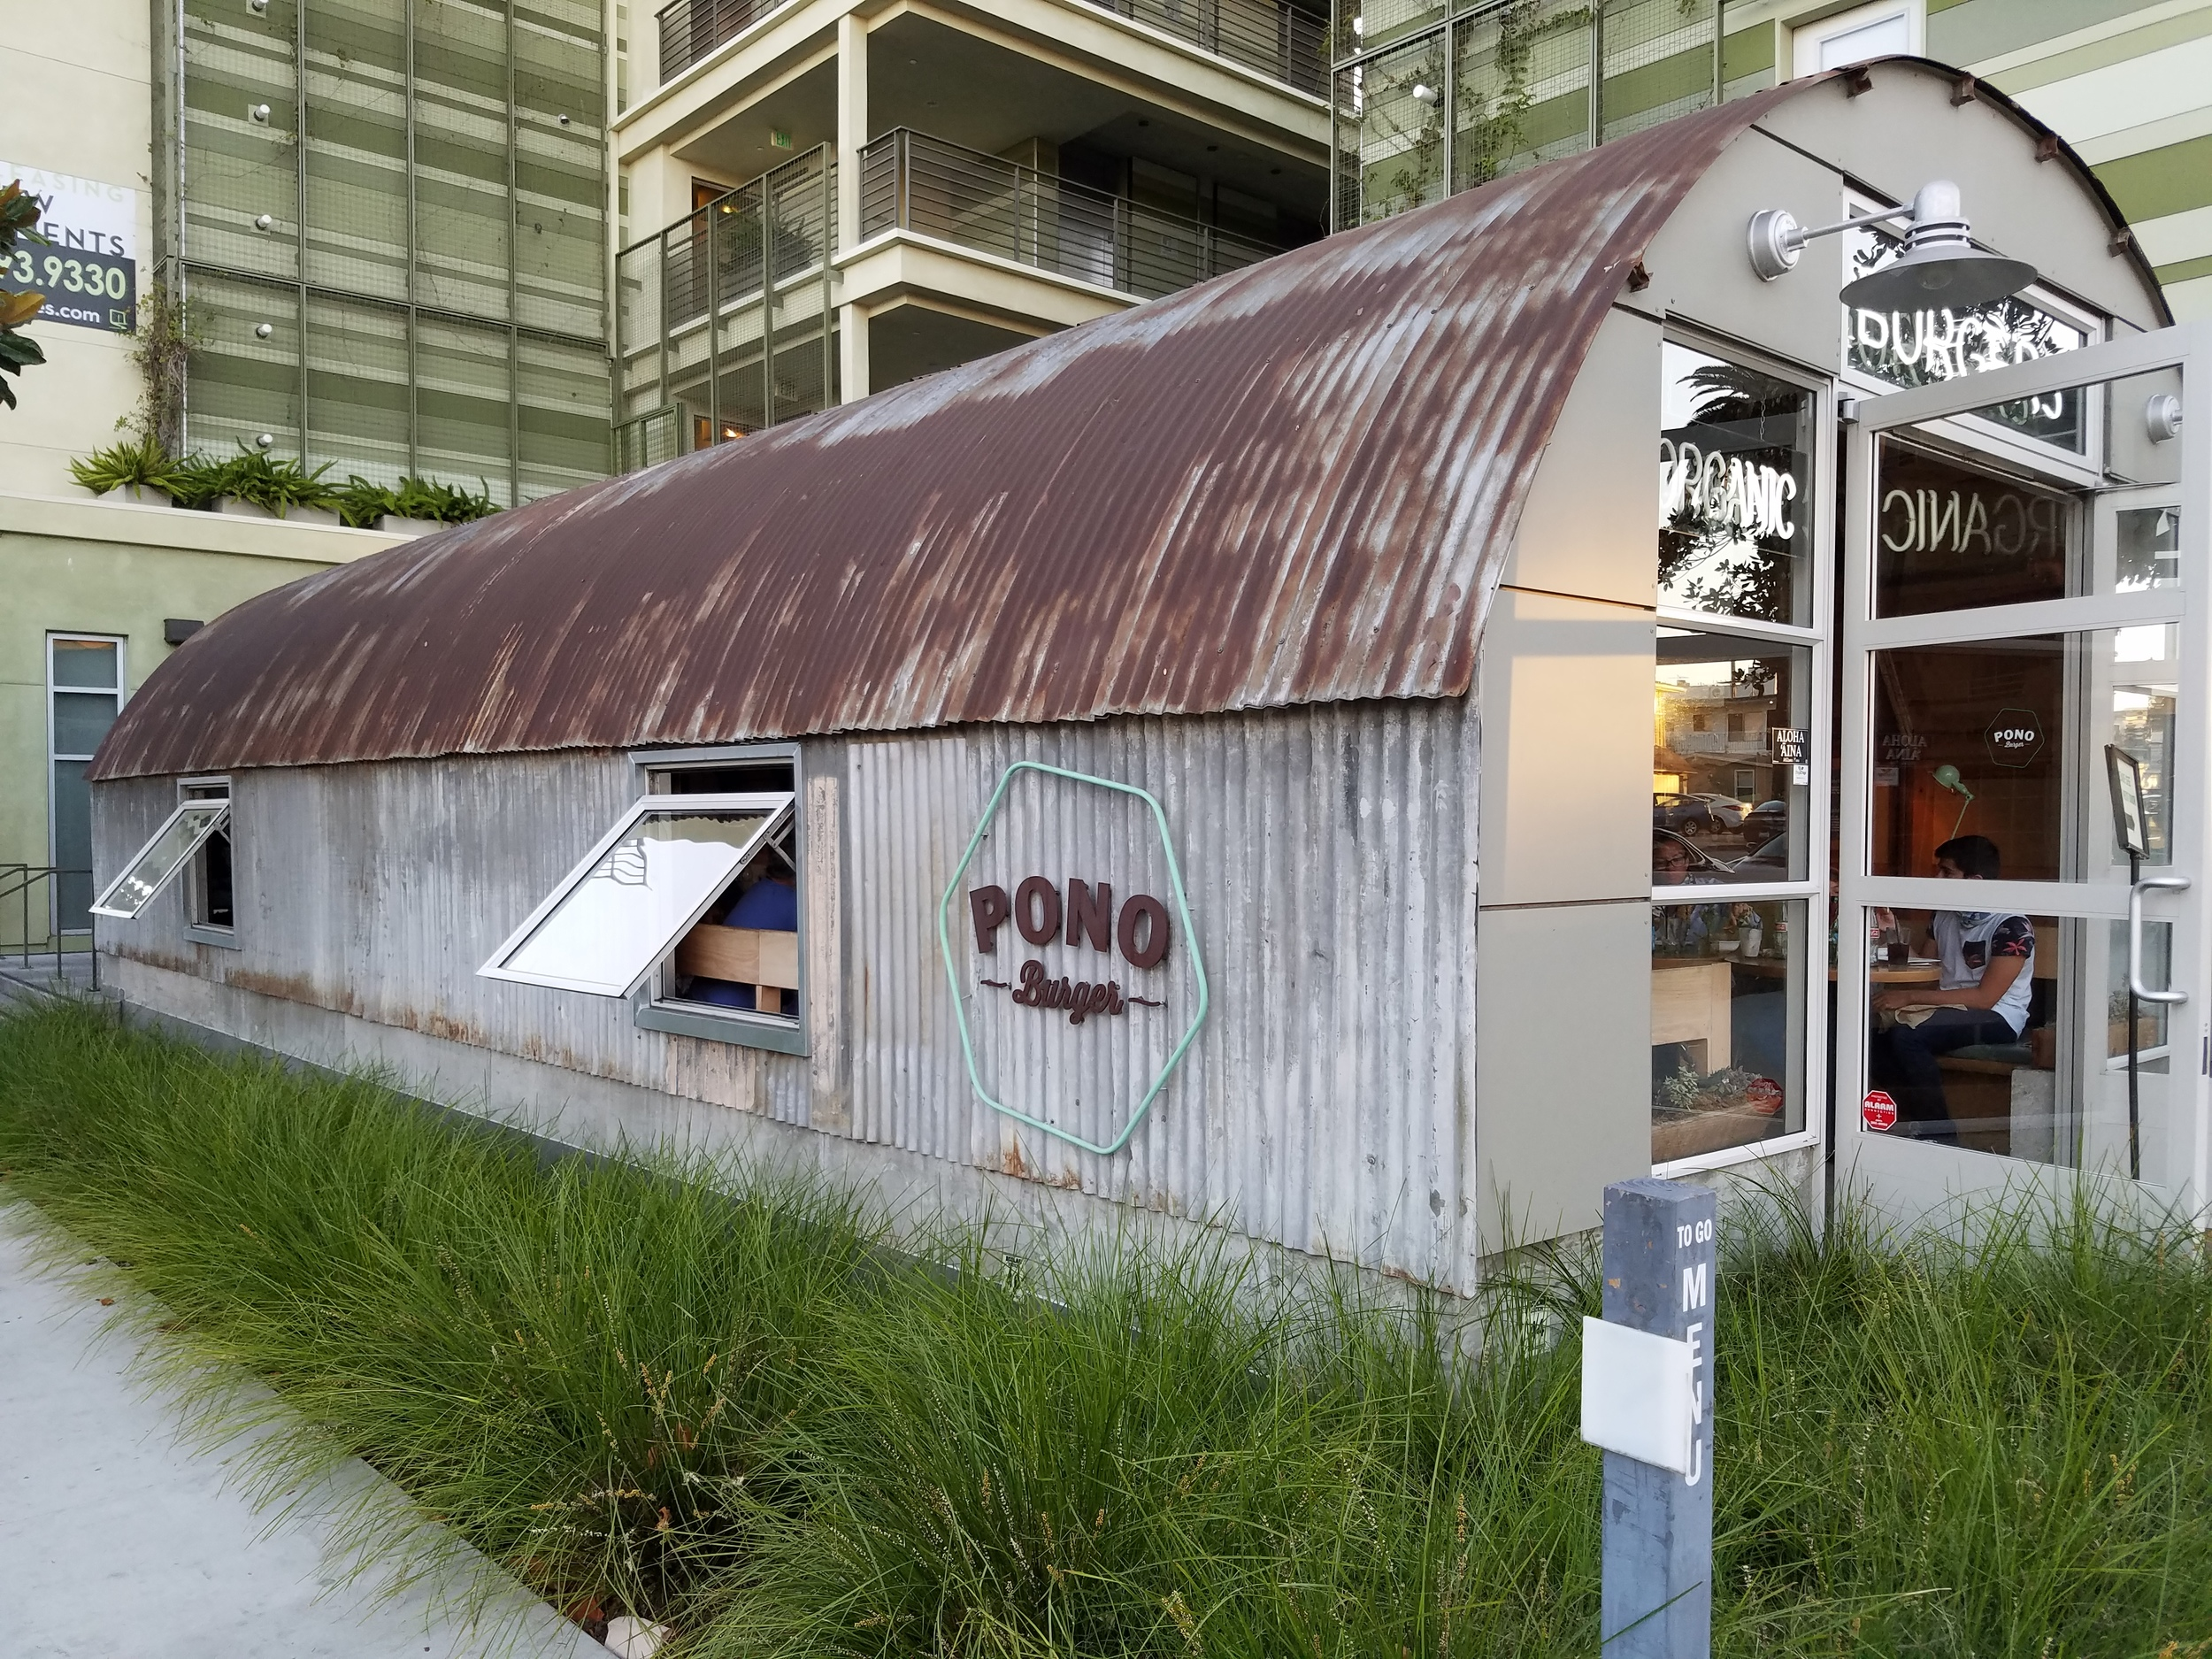 I love that part of Pono Burger is a Quonset Hut!